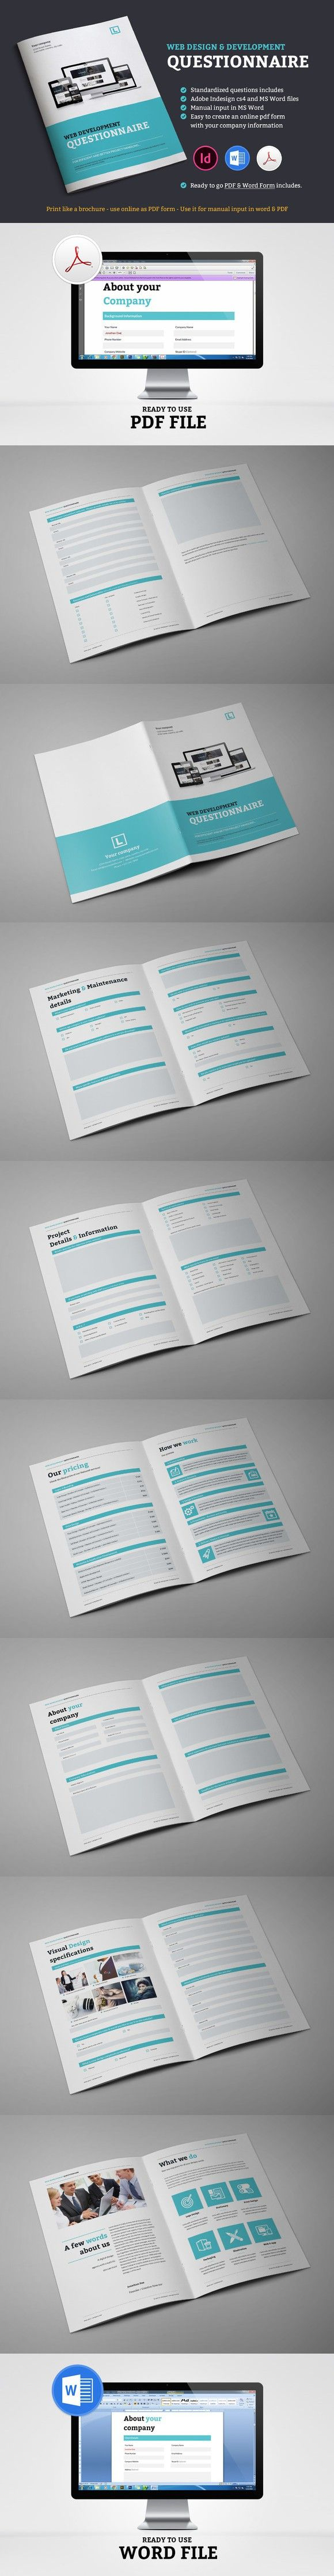 Web Design Questionnaire Stationery Templates 1200